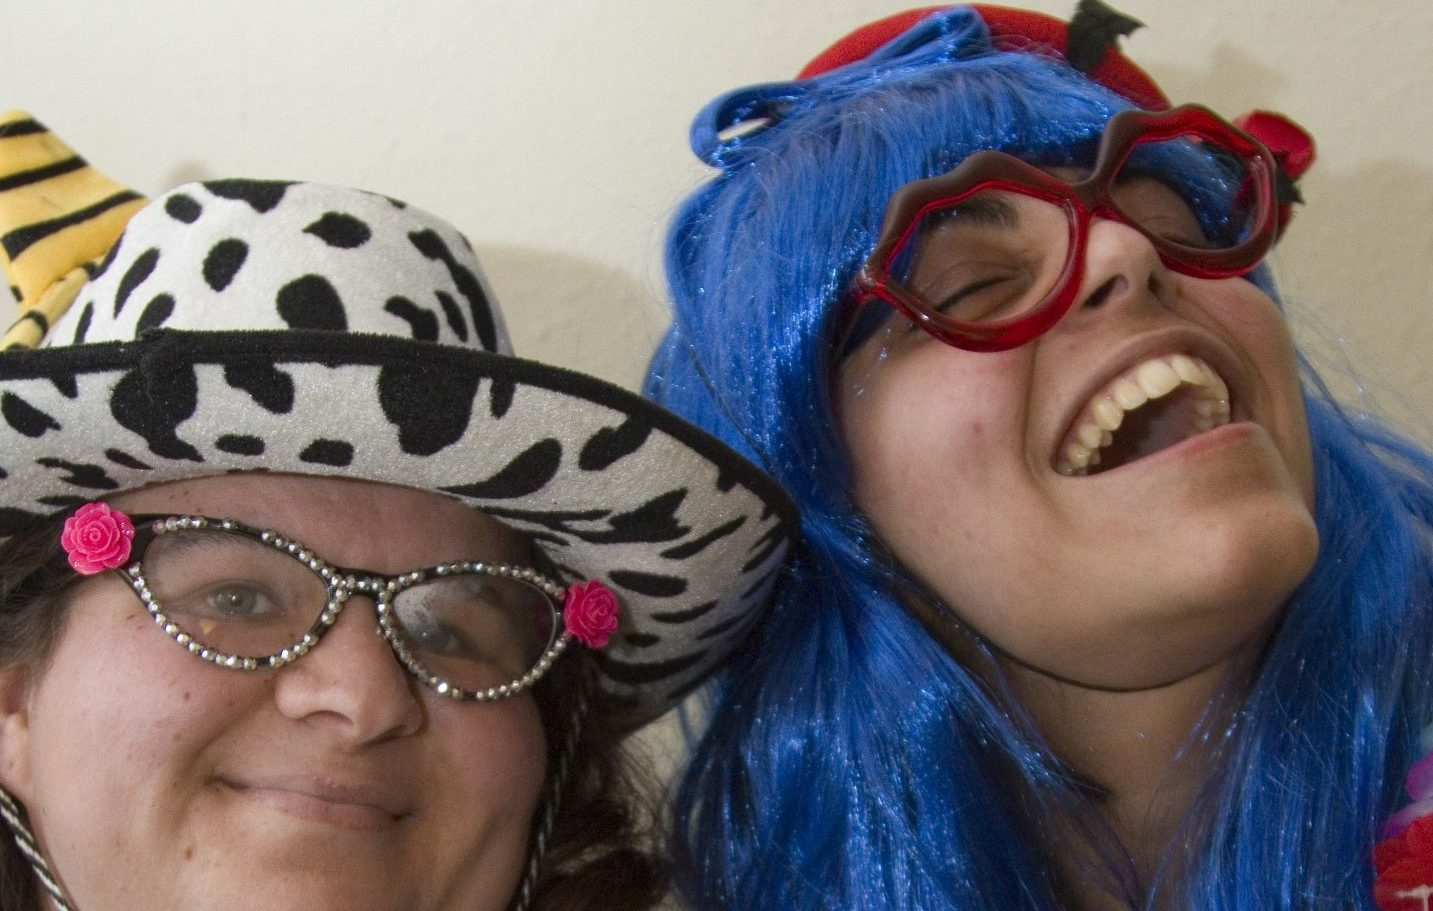 two young women wearing wigs, hats and silly glasses